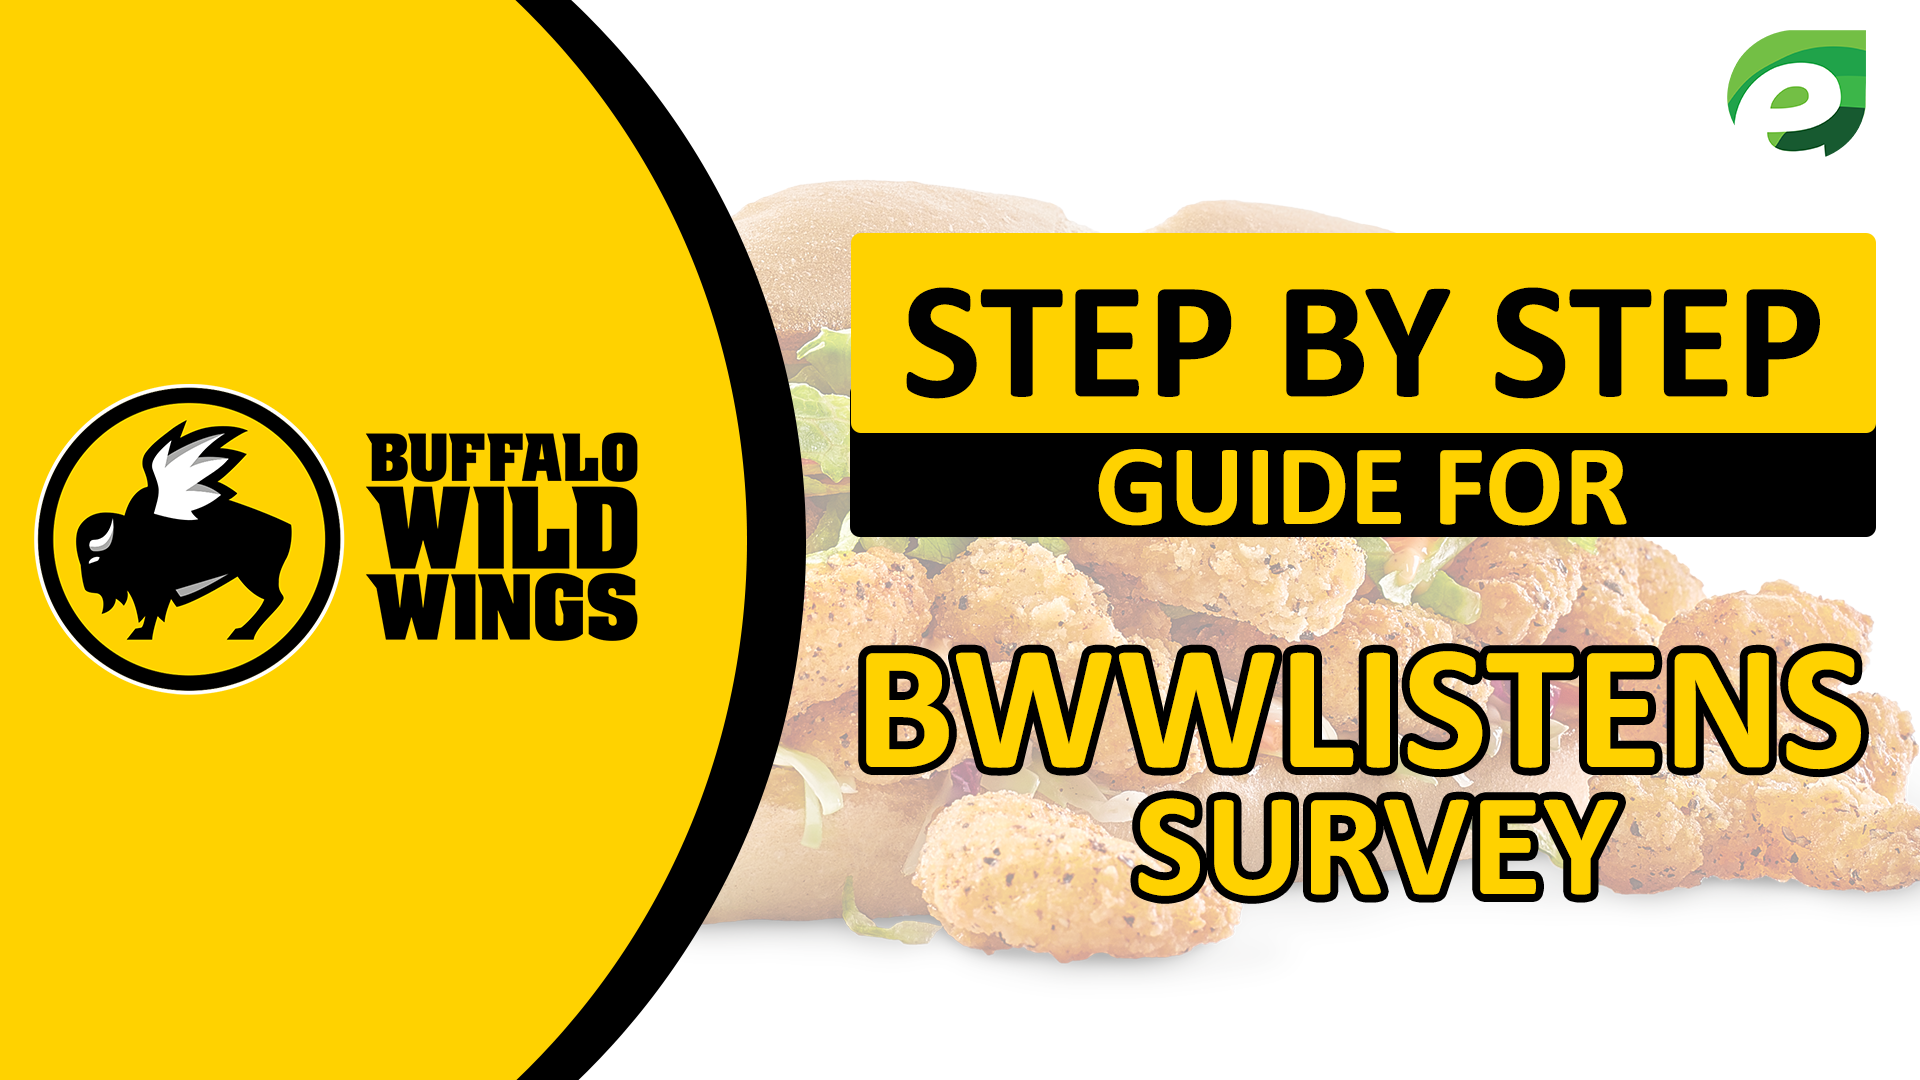 Step Step by Guide for Bwwlistens survey